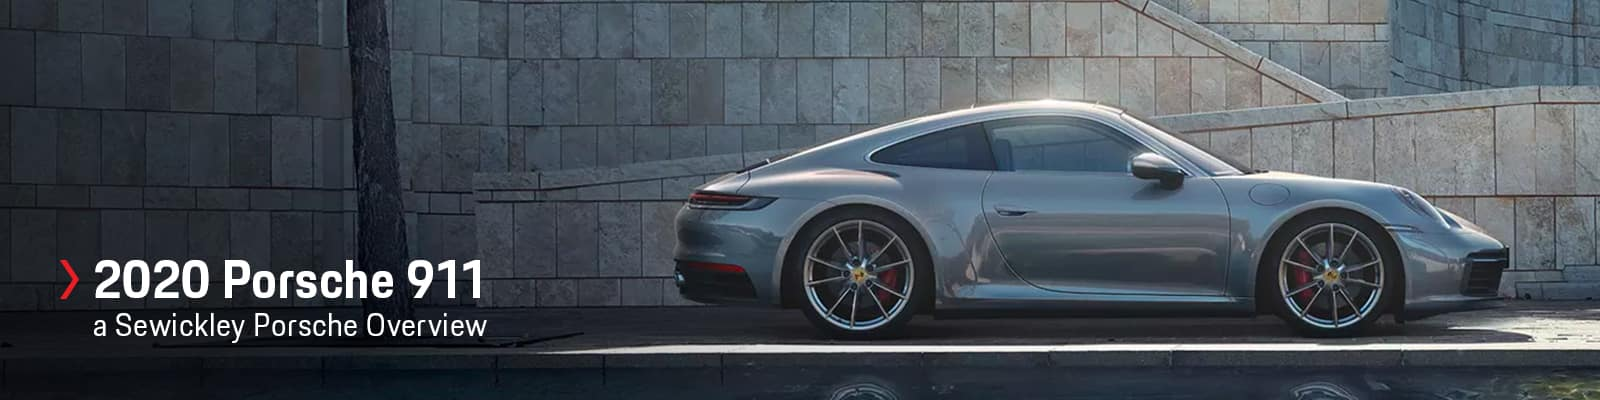 2020 Porsche 911 Model Overview at Sewickley Porsche